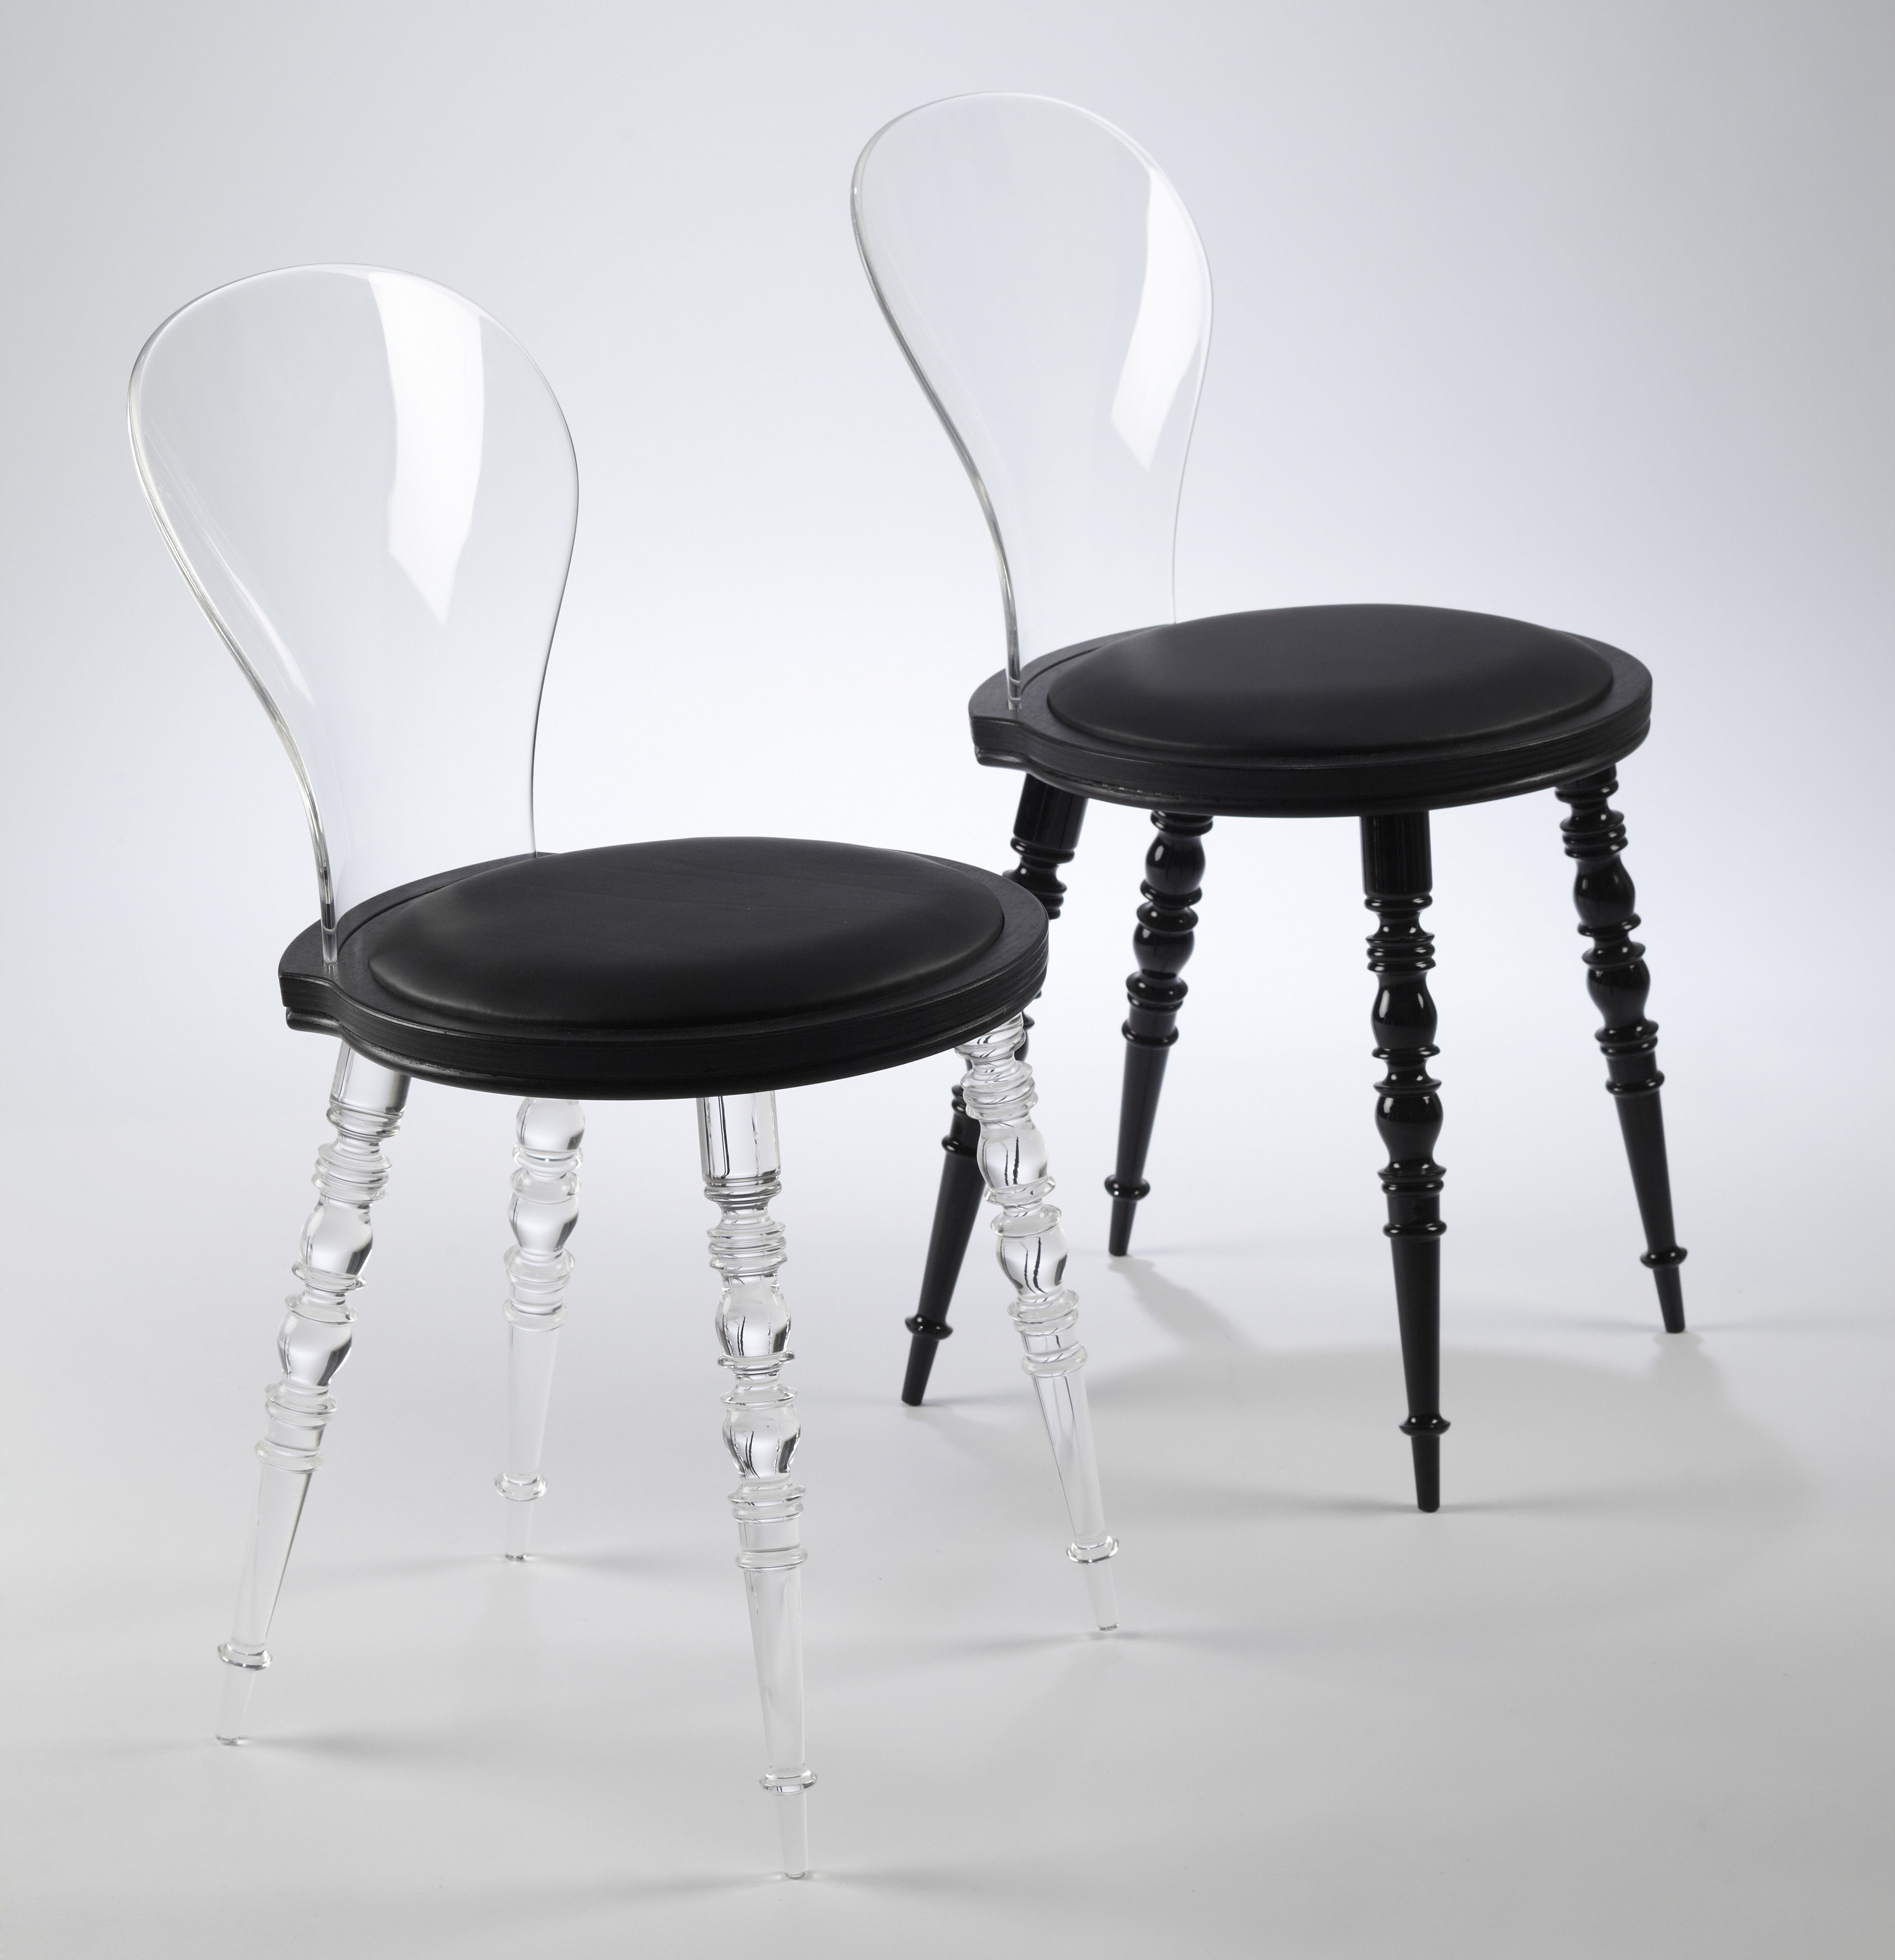 Chaise Moderne Transparente: Chaise Babel / Transparent & Assise Cuir Pieds Noirs